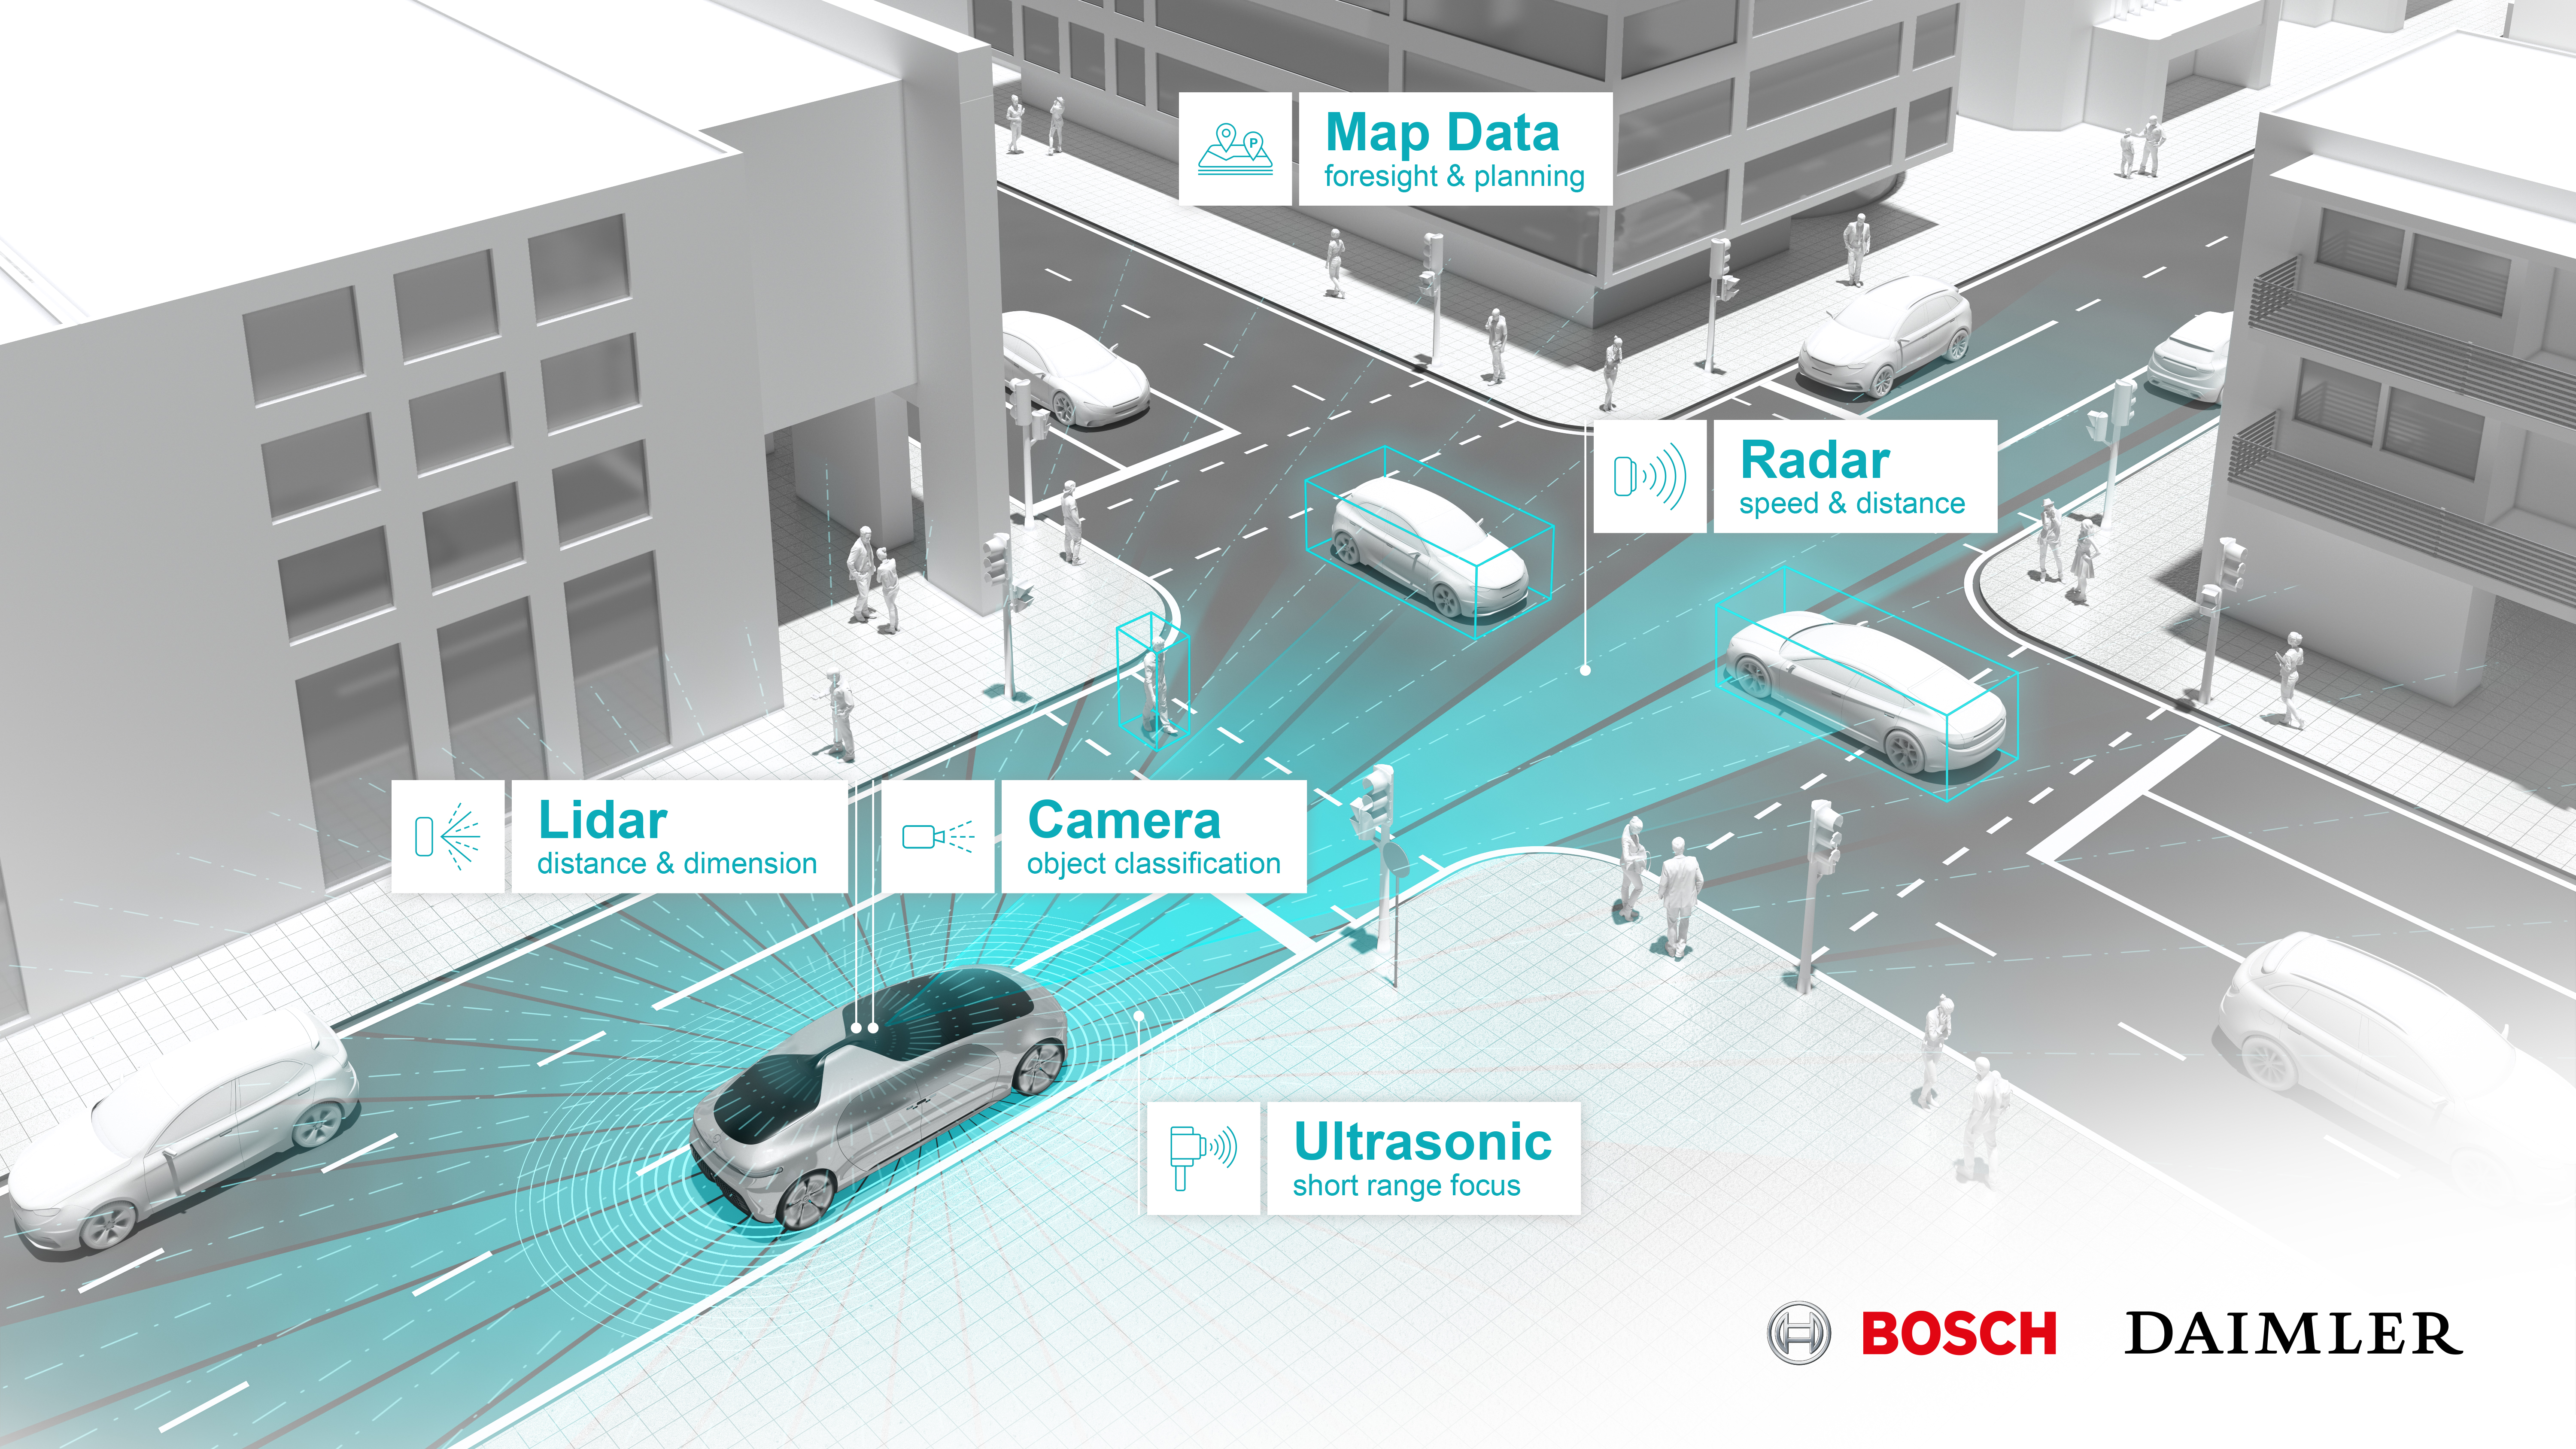 Bosch and Daimler are working together on fully automated, driverless system